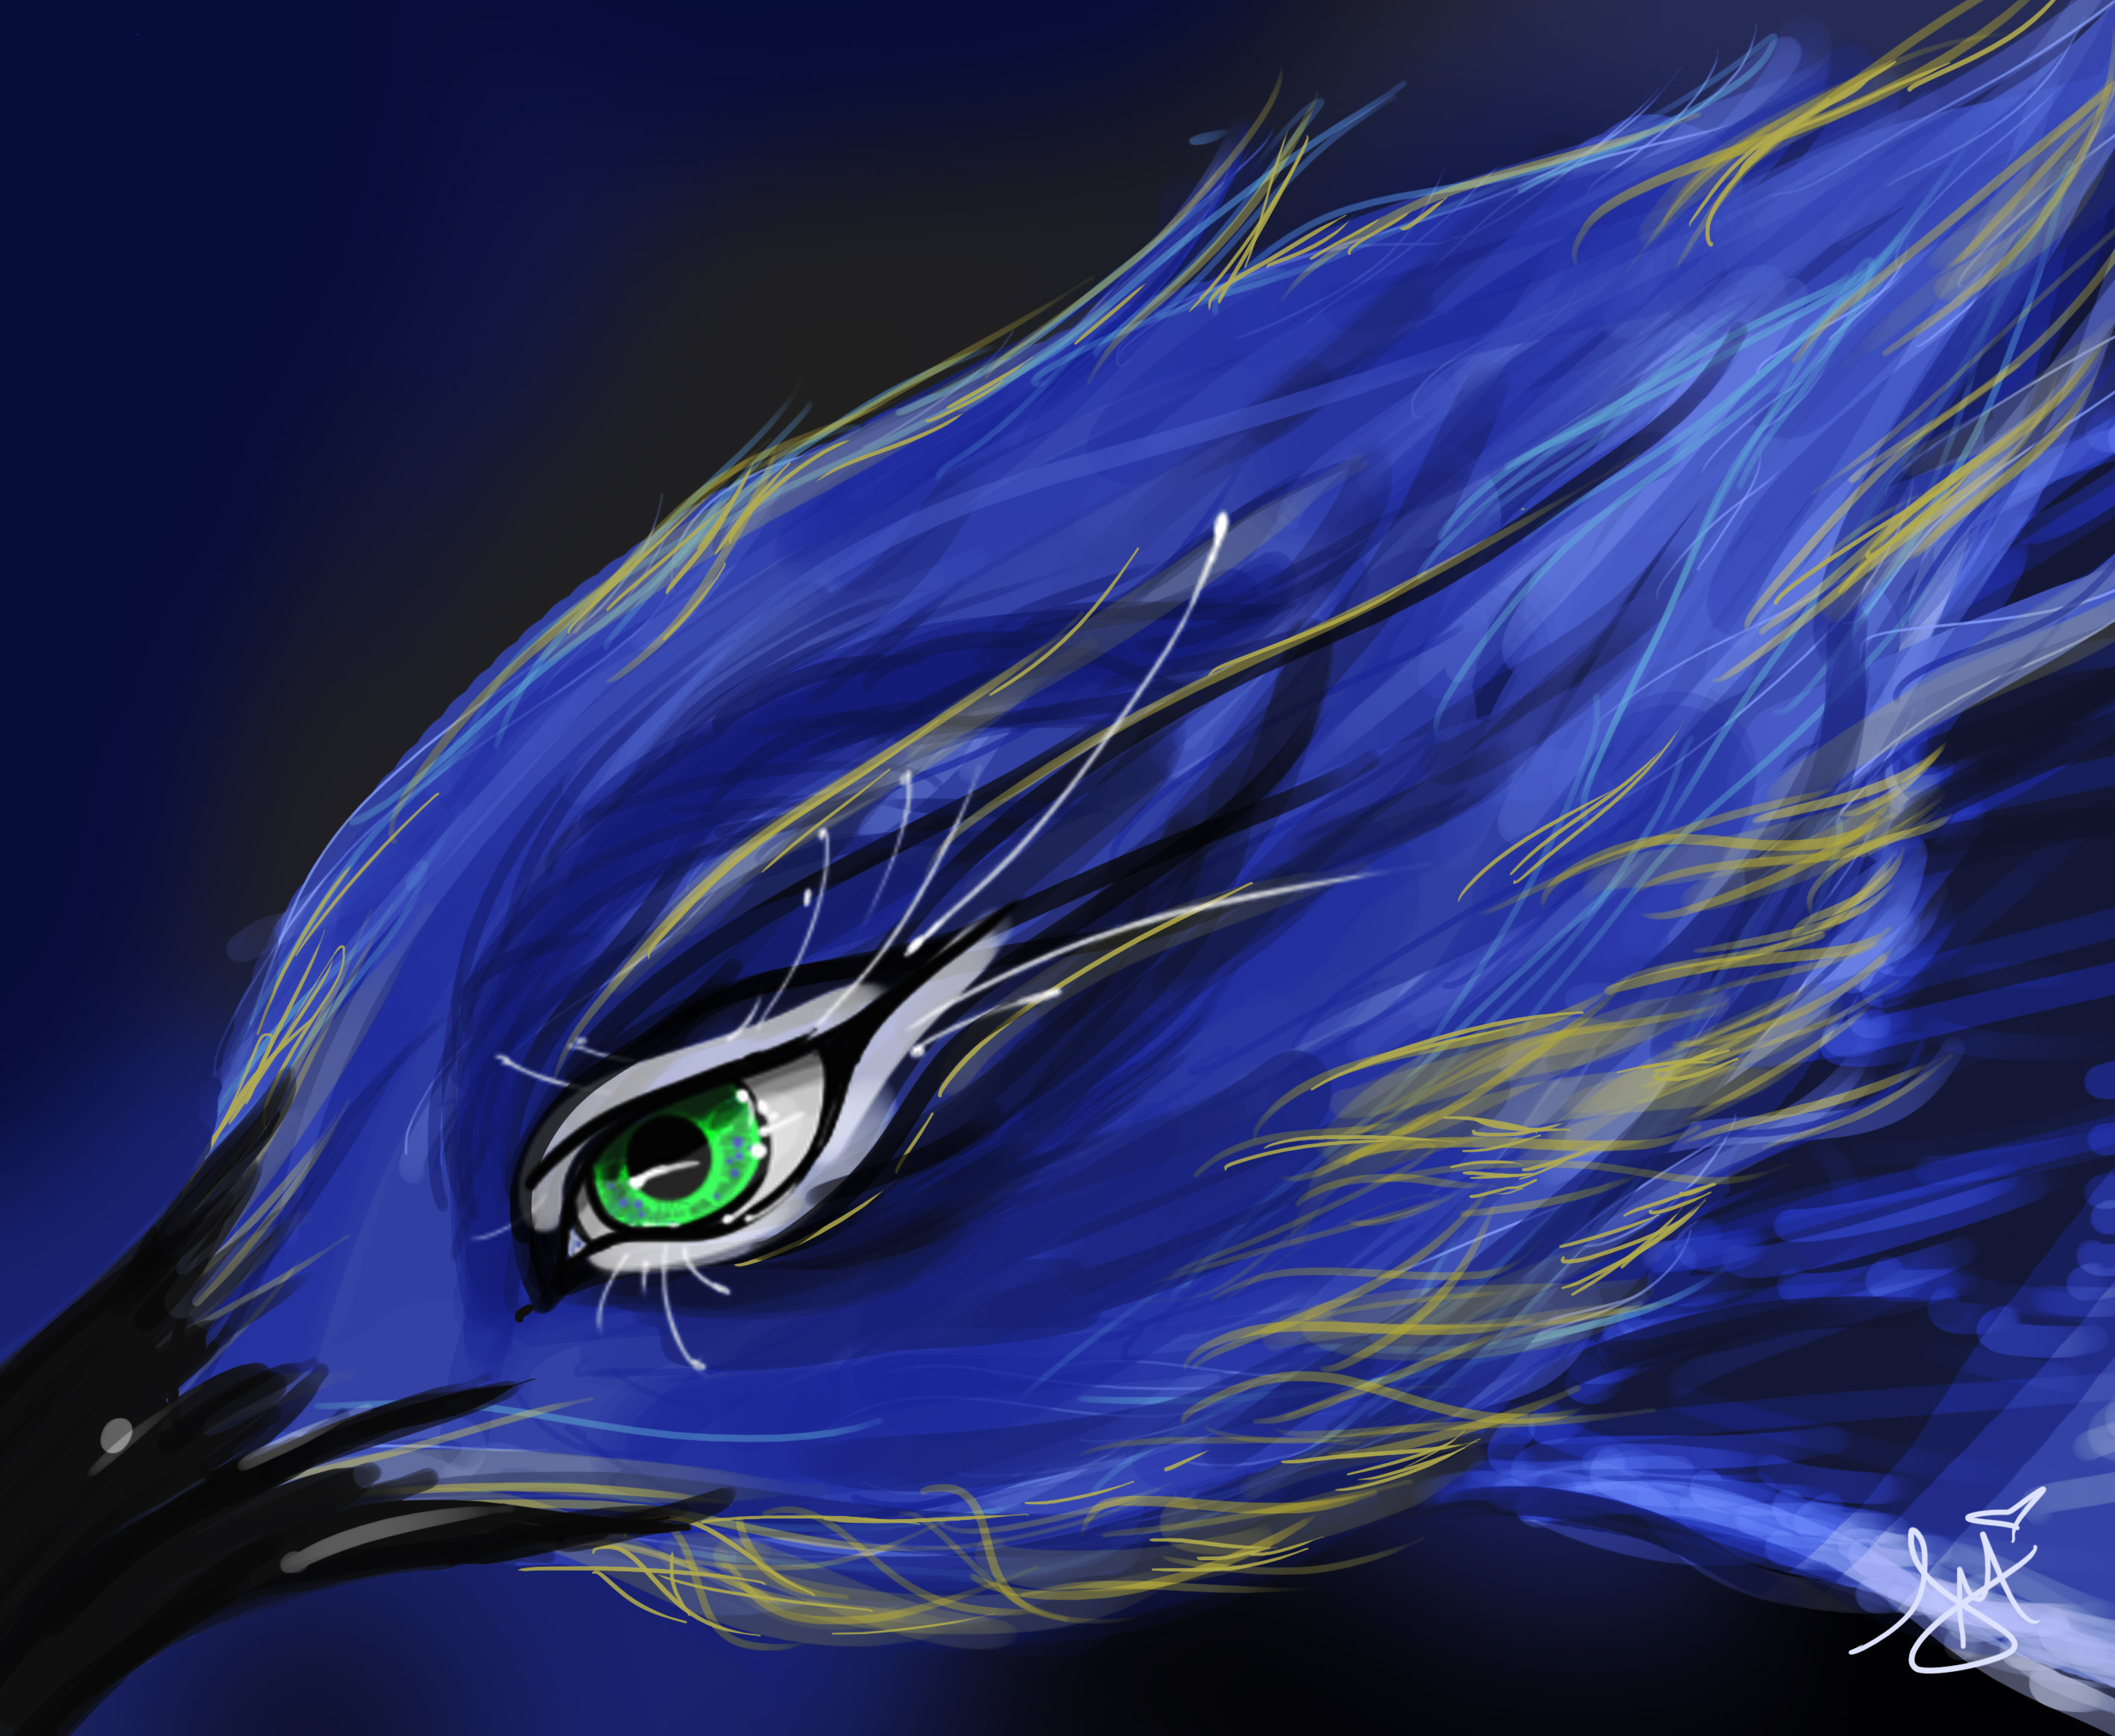 Download Blue Jay By Toxicunique Dcj Wallpaper Full HD Wallpapers 2837x2329